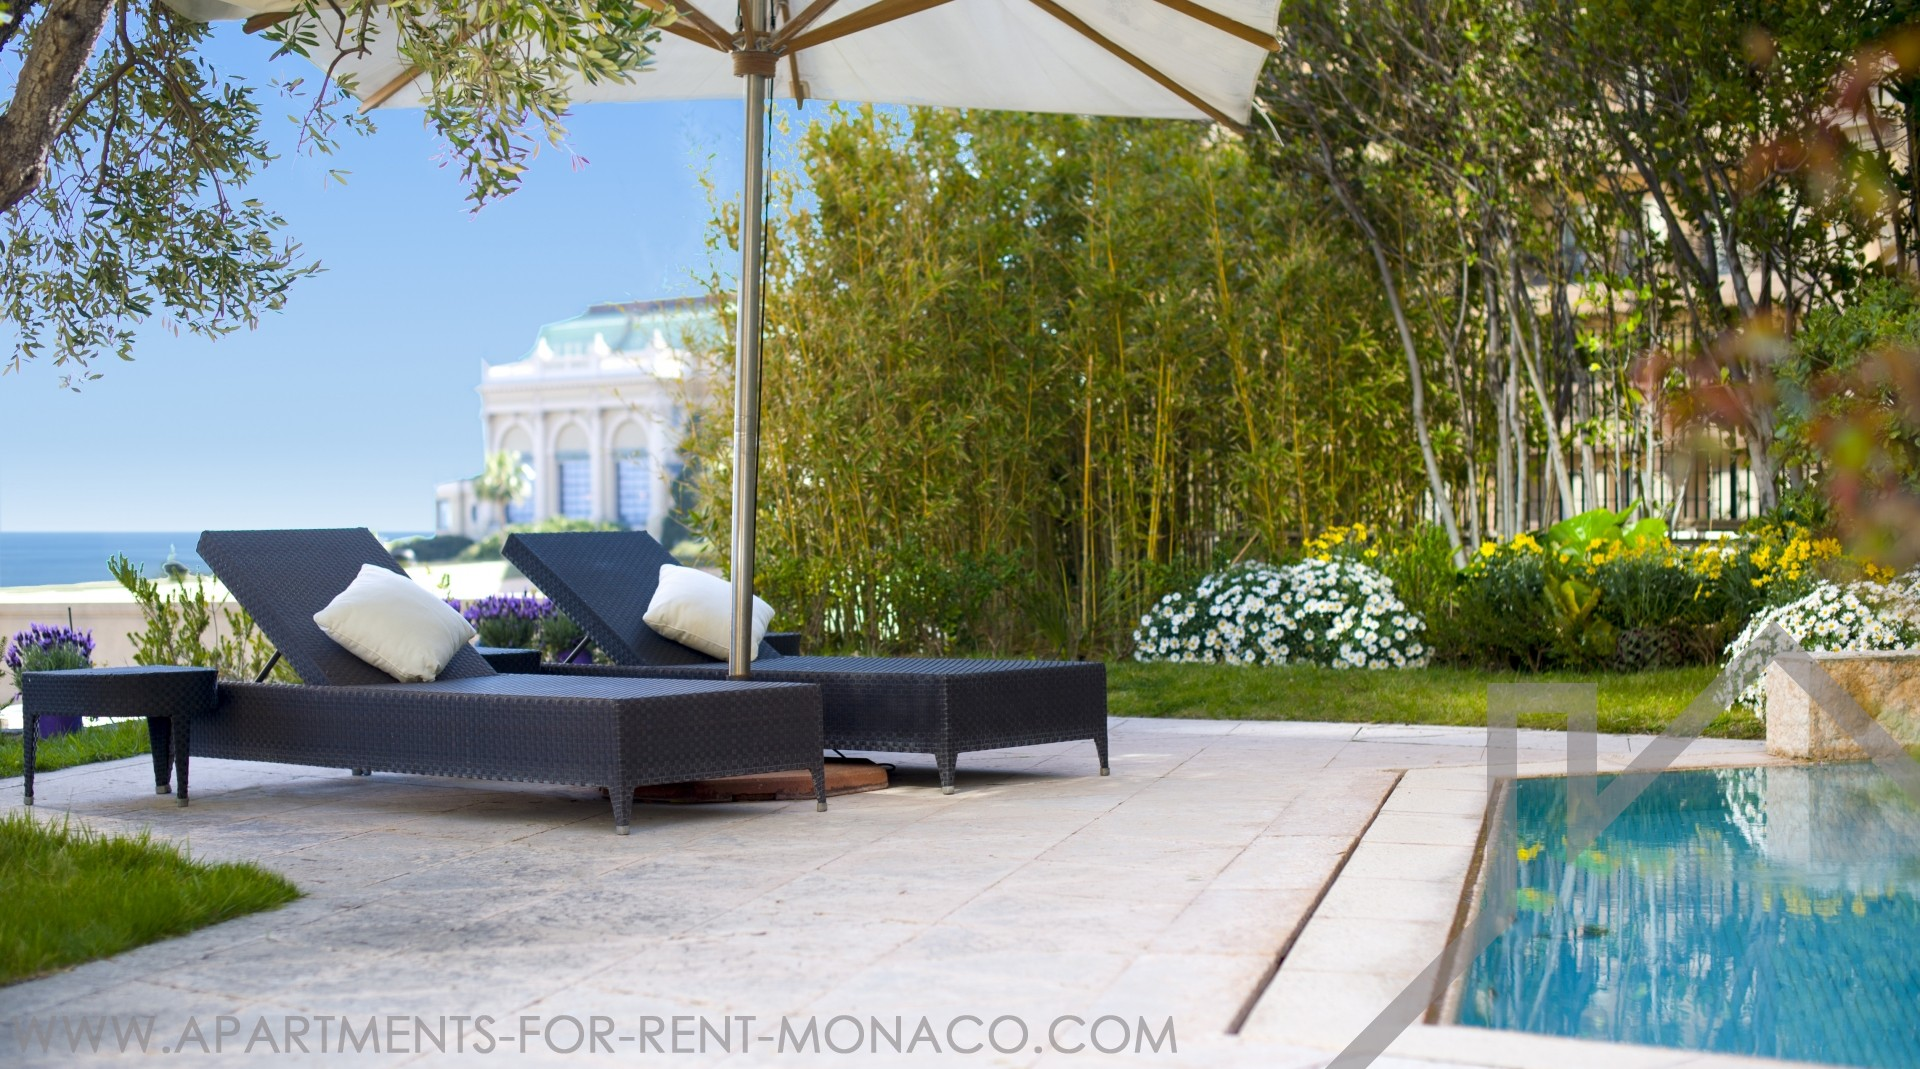 Unique property with private garden and pool. - Apartments for rent in Monaco